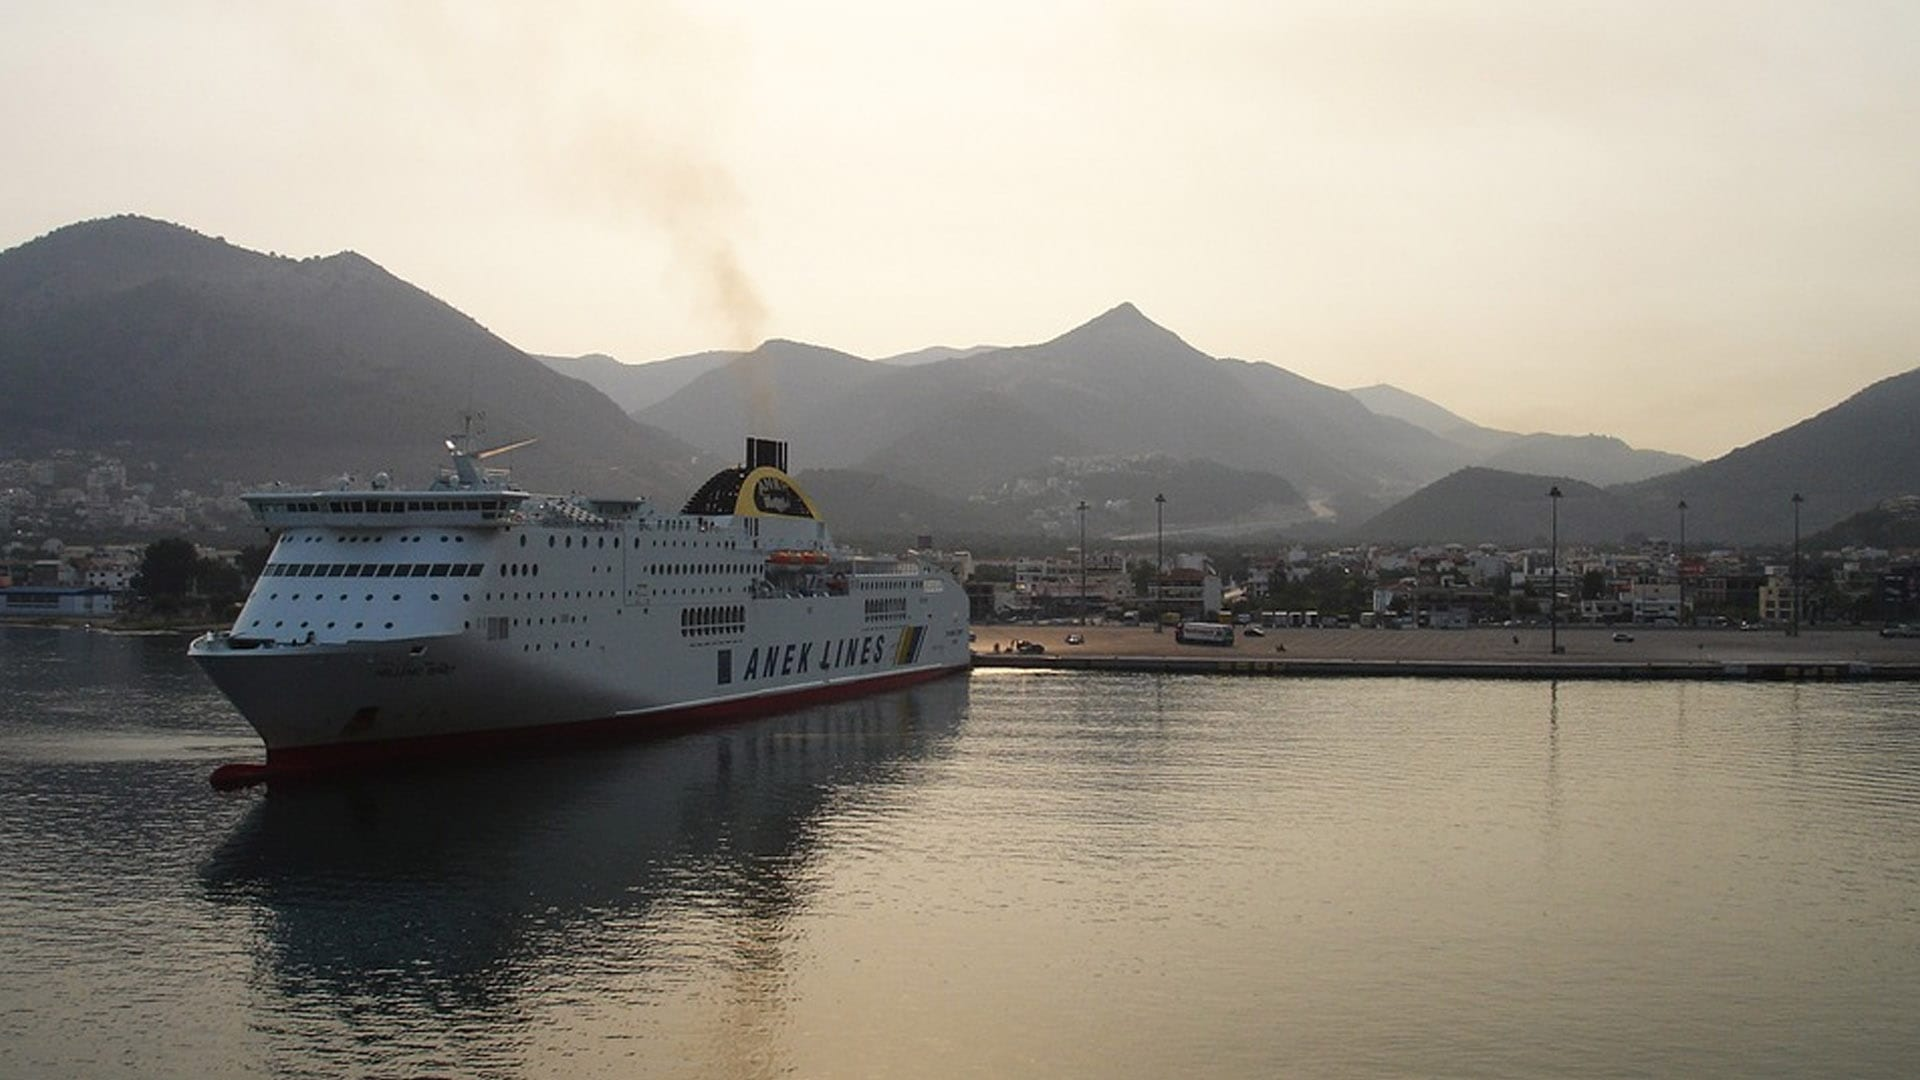 Igoumenitsa Port to Reduce GHG Emissions, Congestion with New Quay